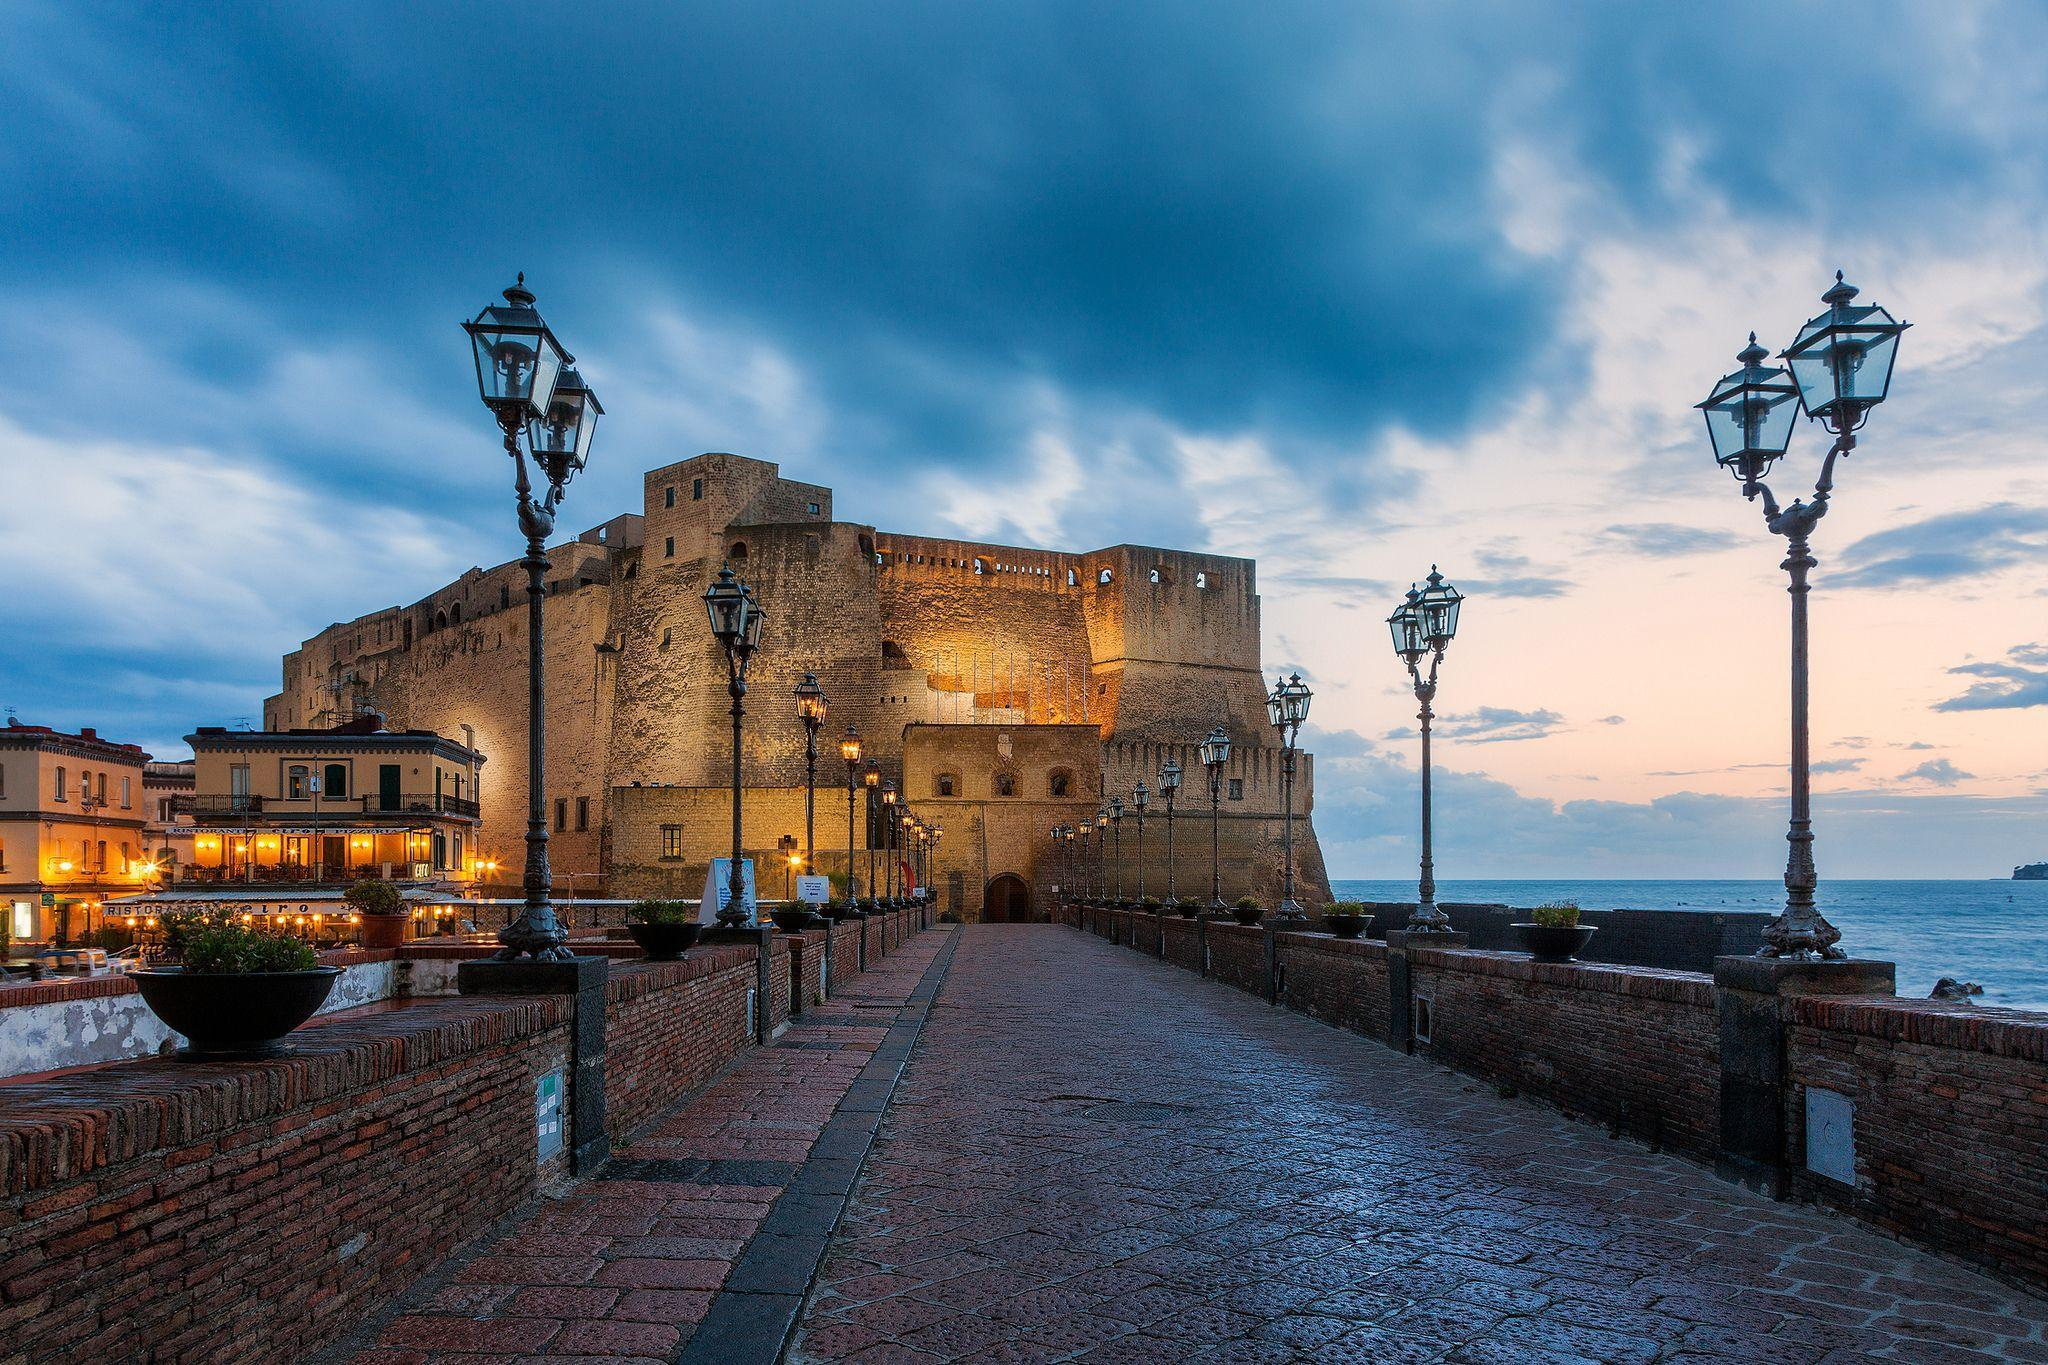 Fortress on the waterfront in Naples, Italy wallpapers and images ...